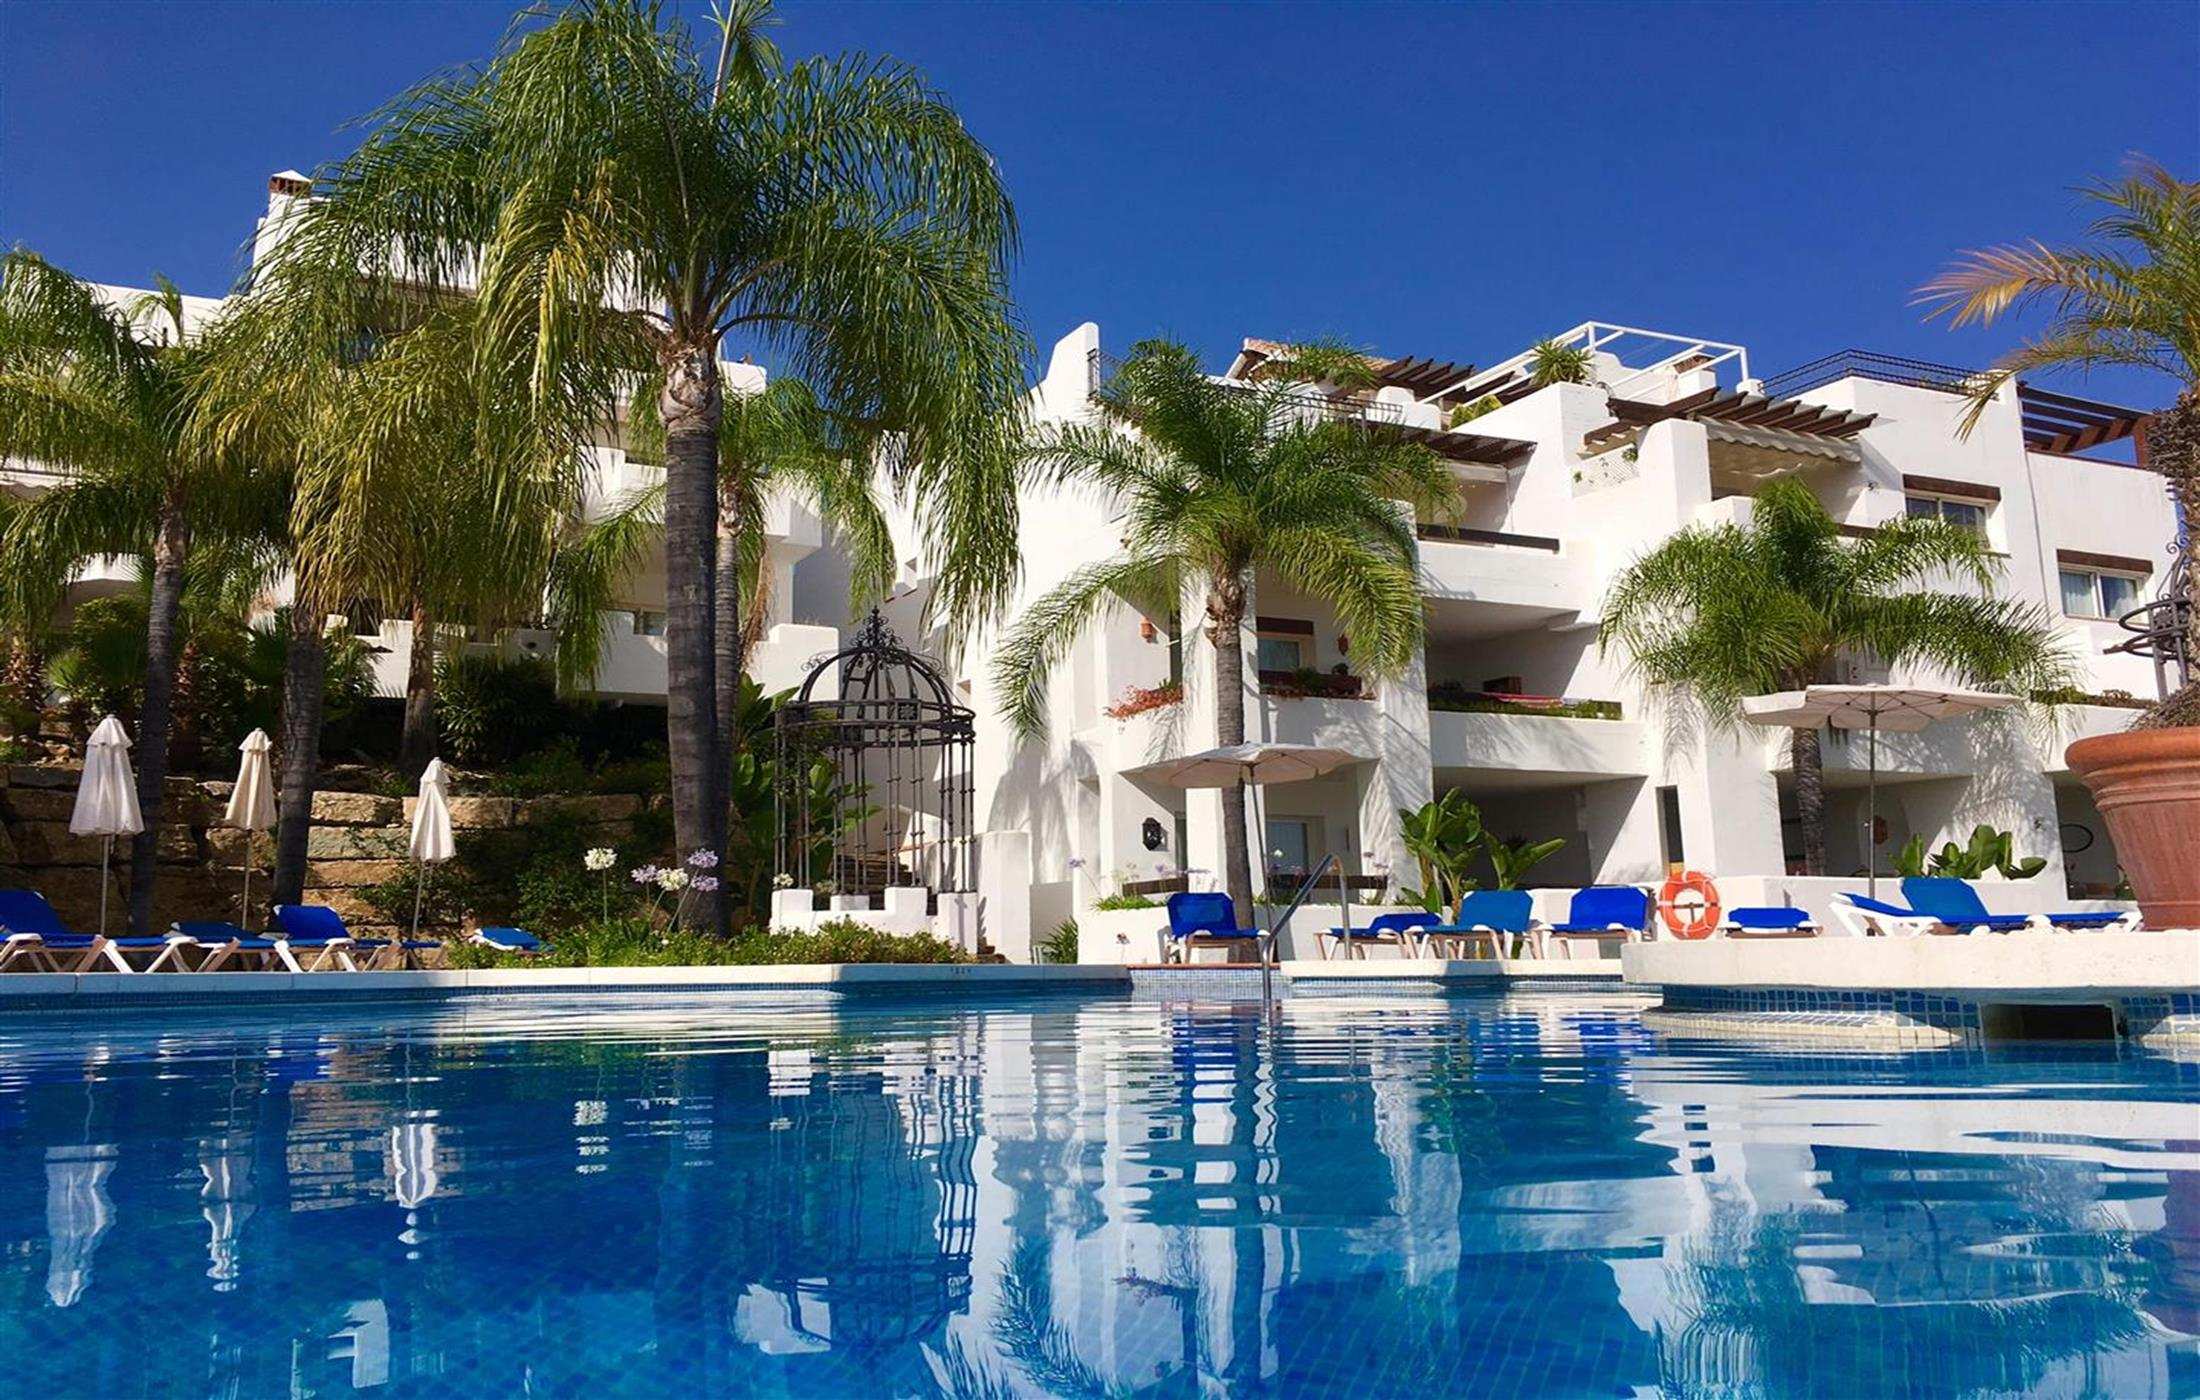 Apartment for rent in Tortugas de Aloha, Nueva Andalucía